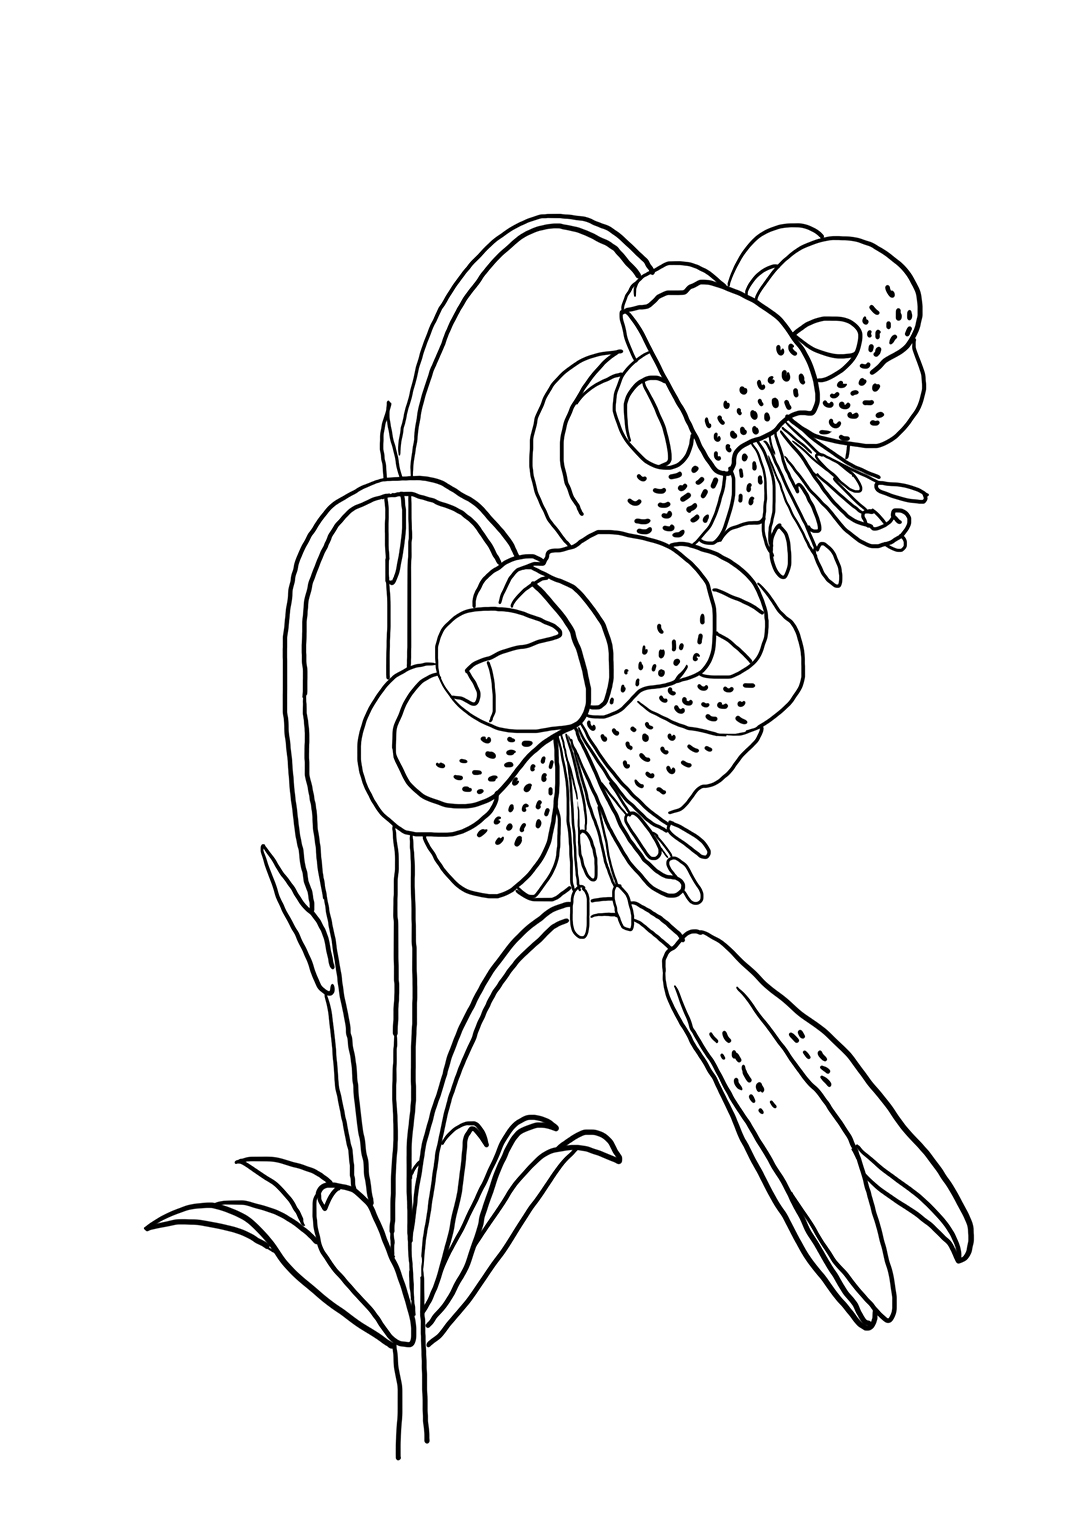 Flower coloring pages flower drawing to color thecheapjerseys Image collections